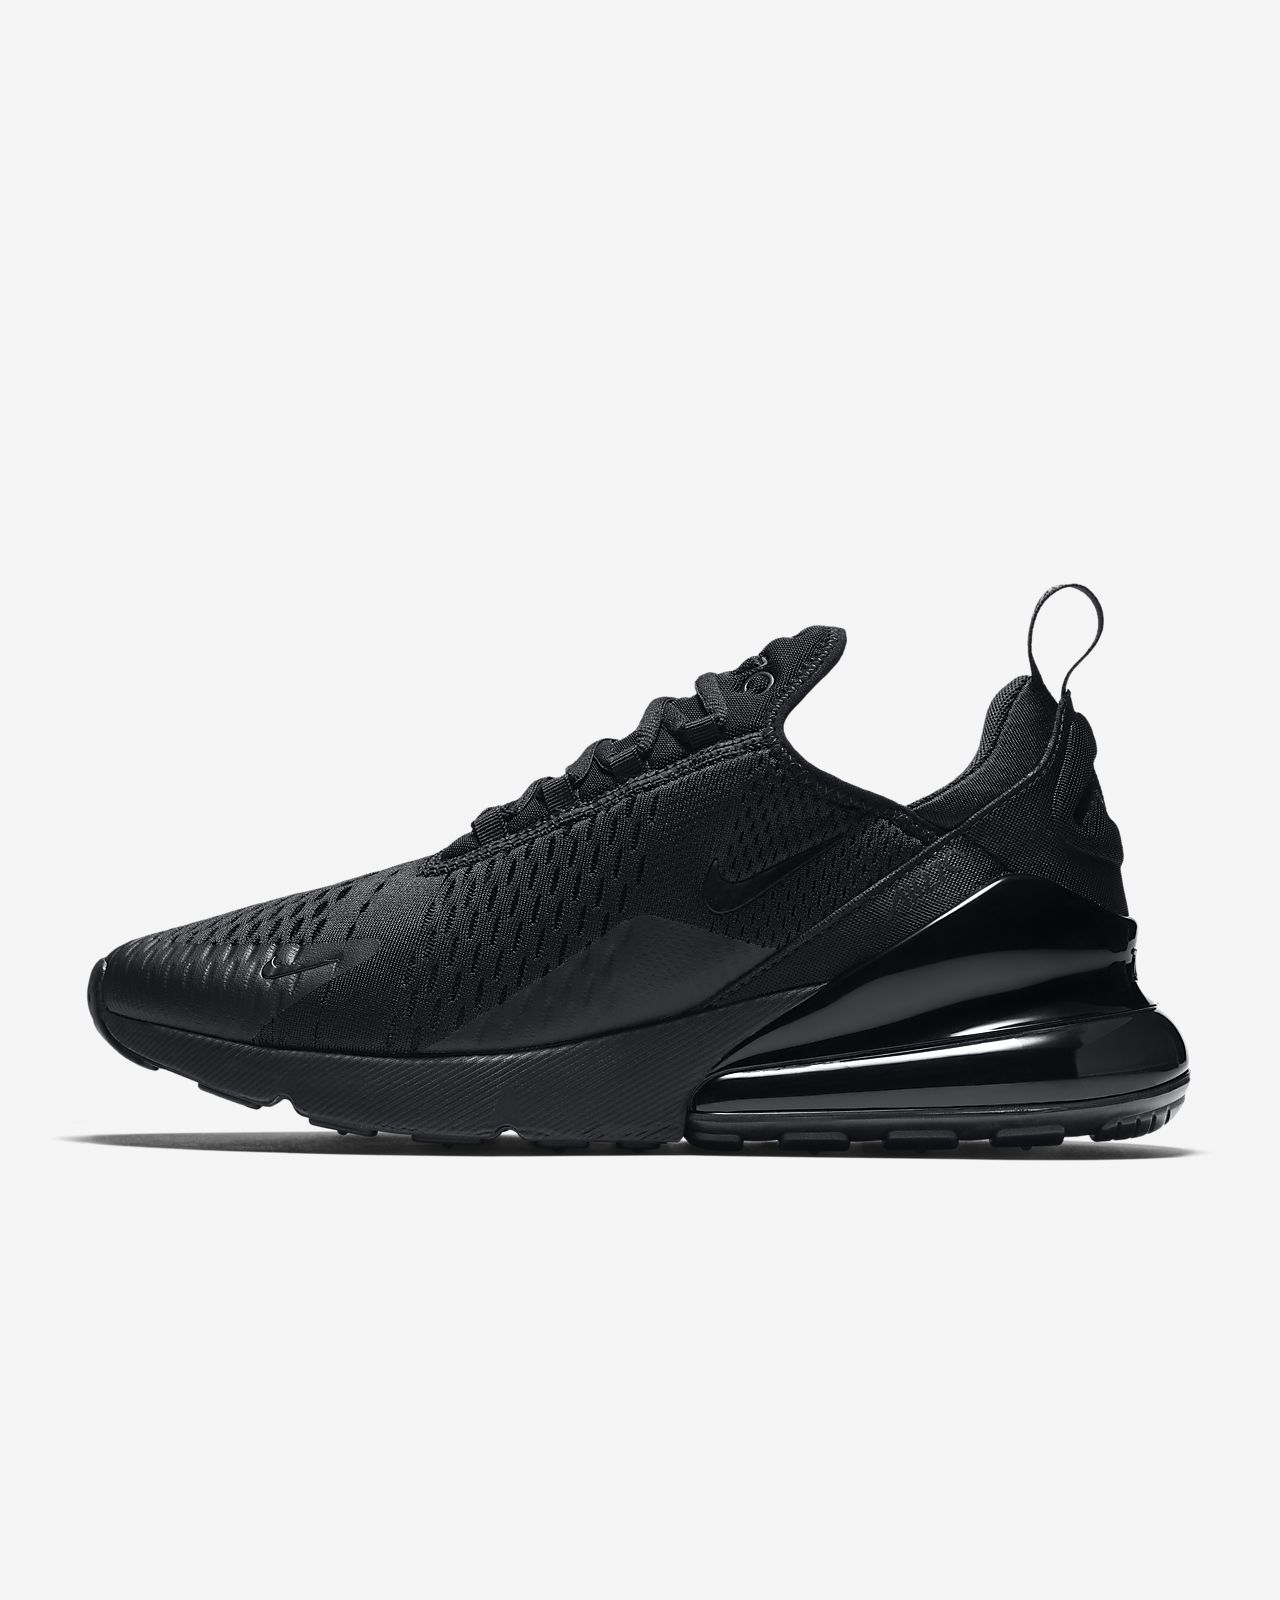 cheap for discount 90b5d 2f2bb ... Chaussure Nike Air Max 270 pour Homme